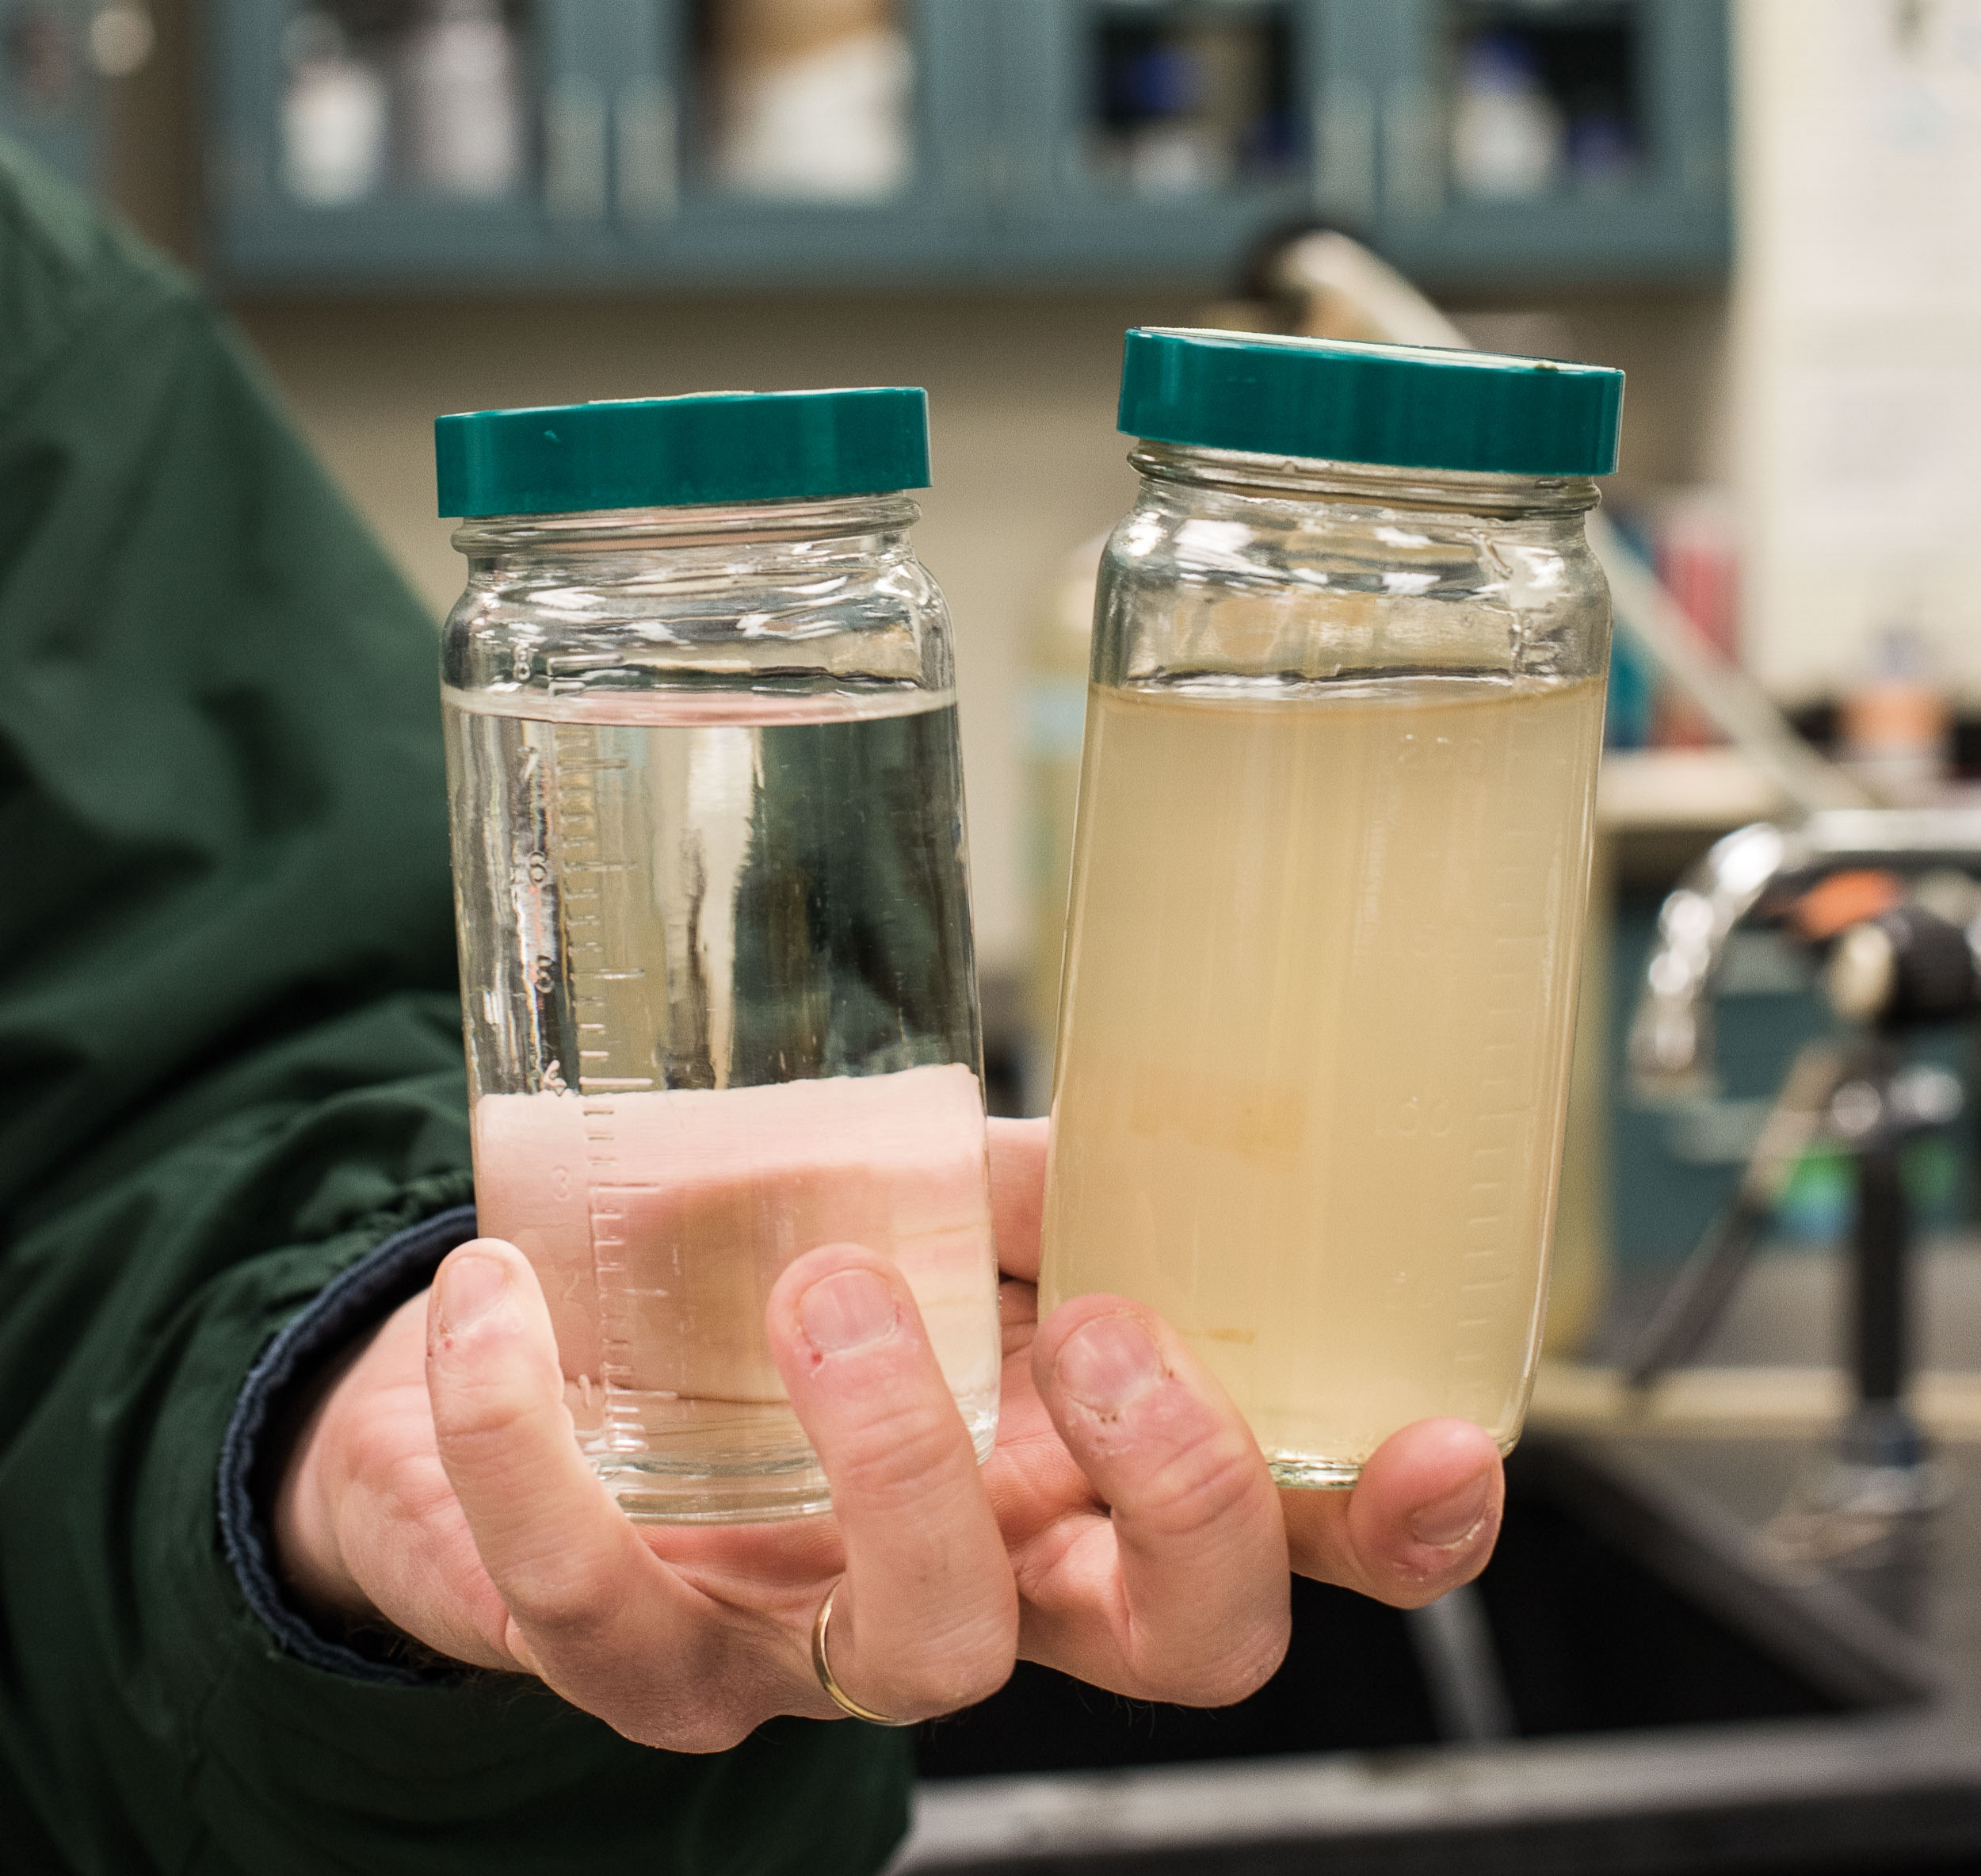 Jeff Swertfeger, who monitors water quality at Greater Cincinnati Water Works, holds water from the Ohio River. Finished water (left) and raw (right).